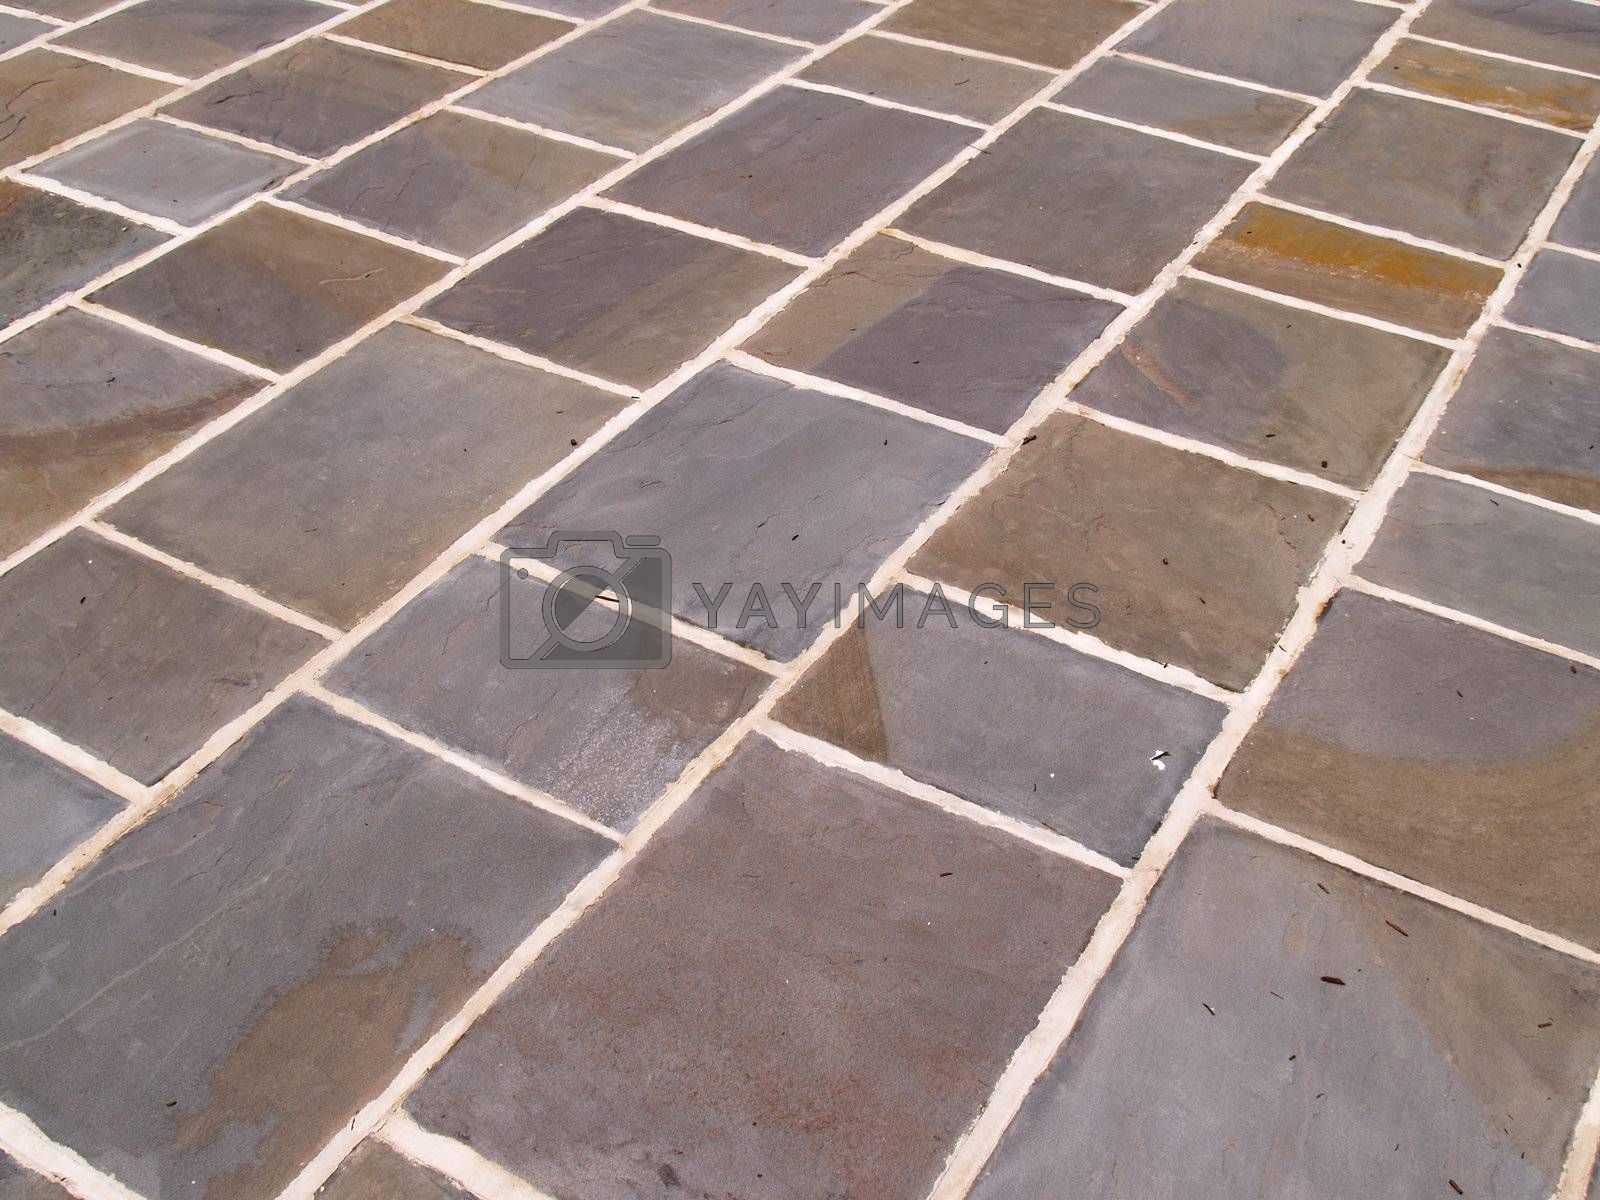 abstract view of an outdoor slate tile patio